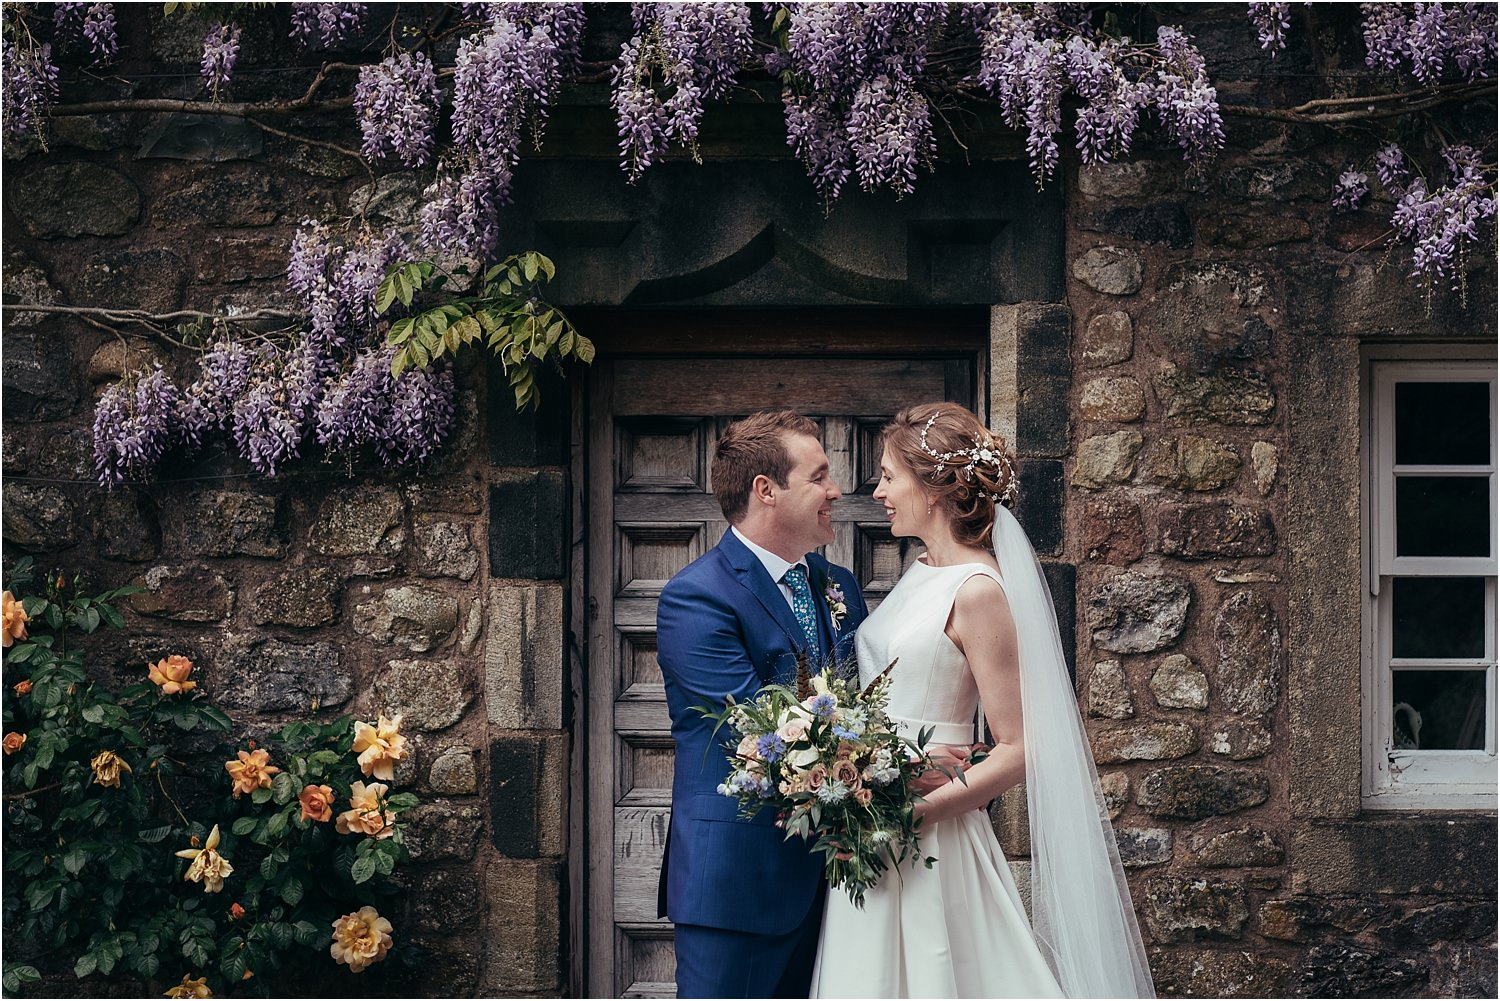 Bride and groom outside their wedding reception venue, The Inn at Whitewell in Lancashire